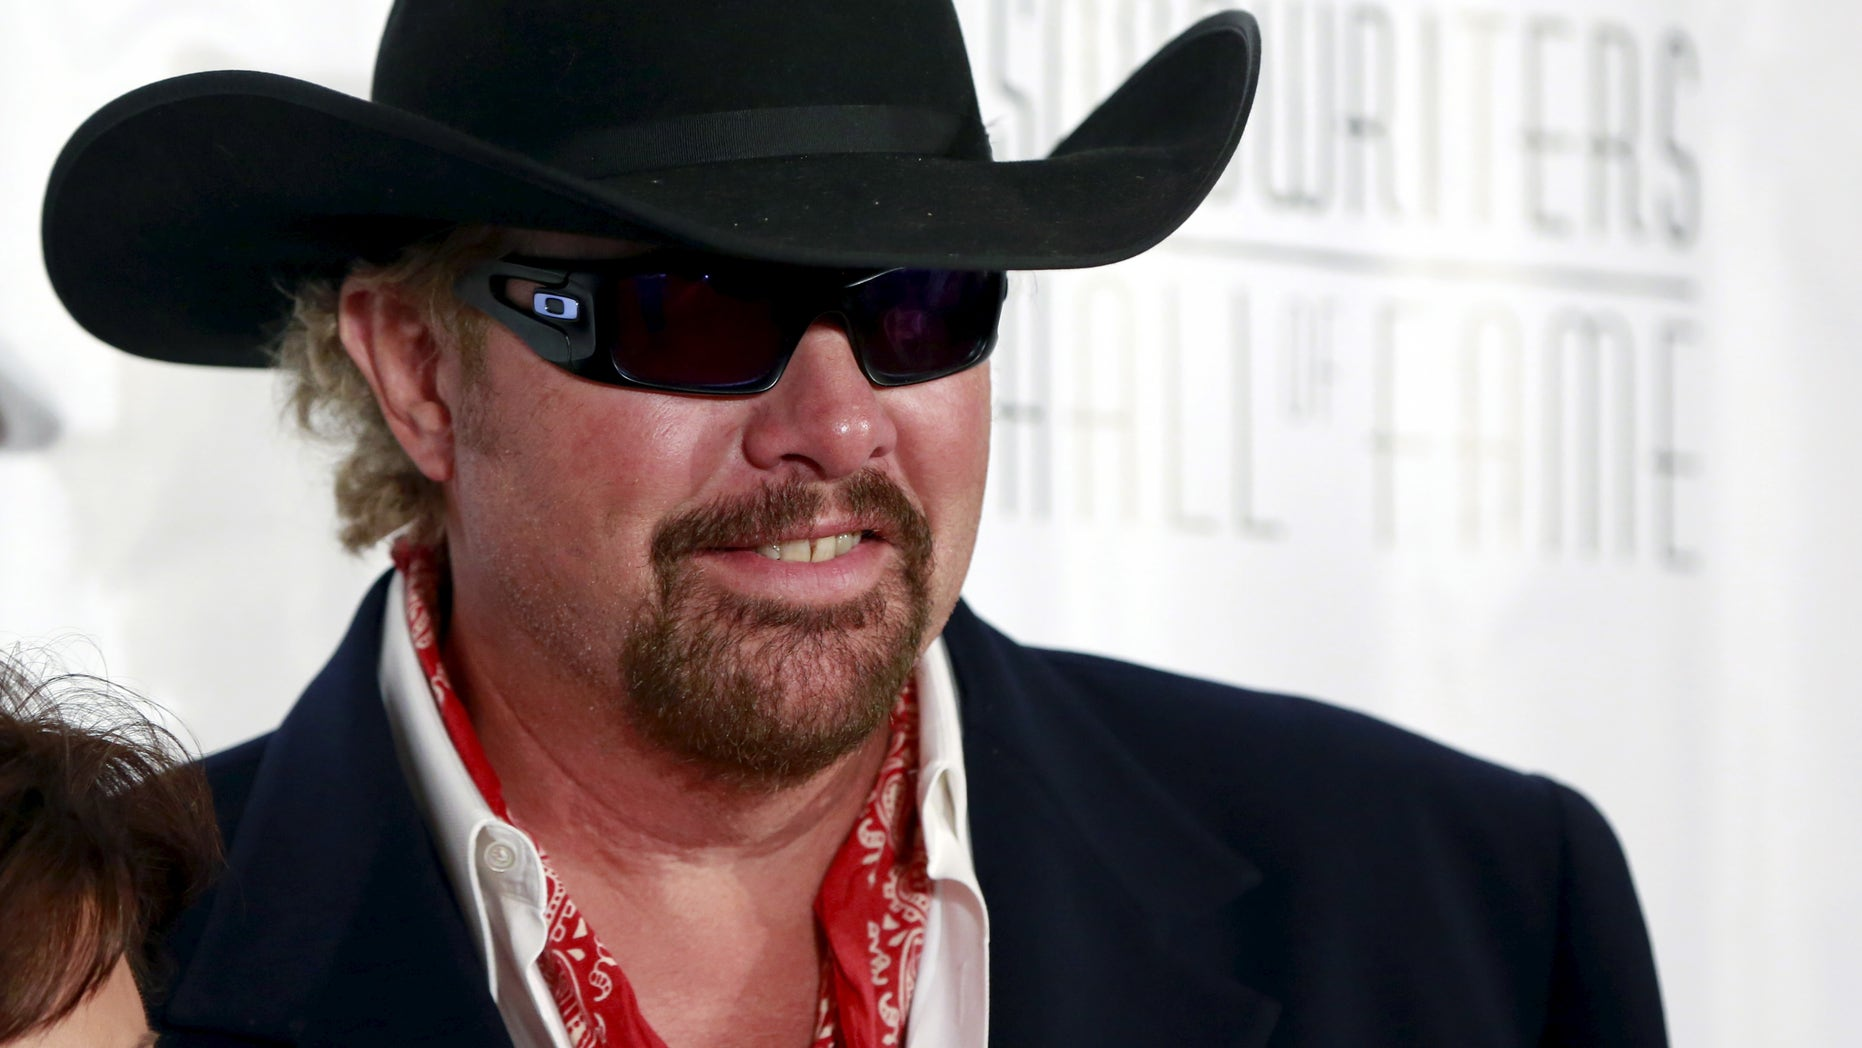 June 18, 2015. Country singer Toby Keith poses on the red carpet  before the Songwriters Hall of Fame ceremony in New York.